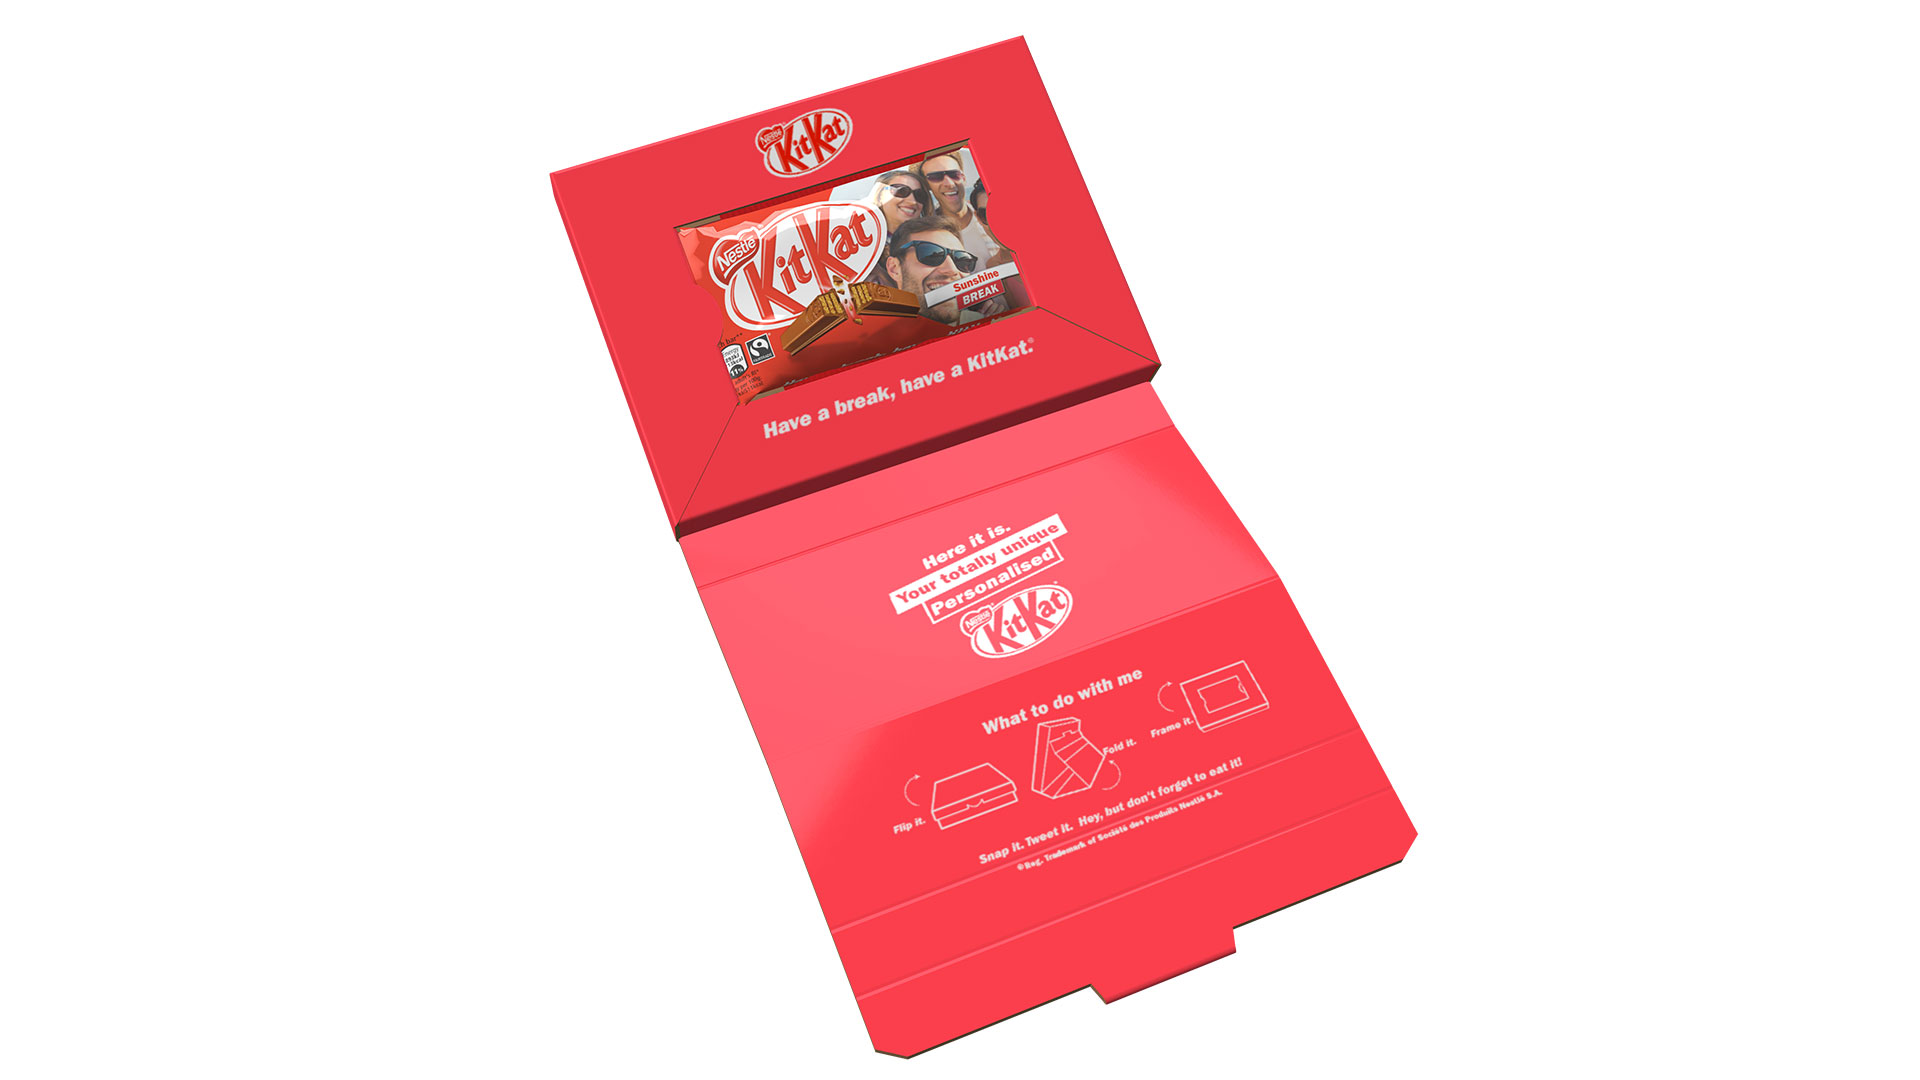 Every_Kitkat_is_delivered_in_a_gift_box_that_folds_into_a_frame_2_tcm245_2451502_tcm245_2451582_tcm245-2451502 (1)